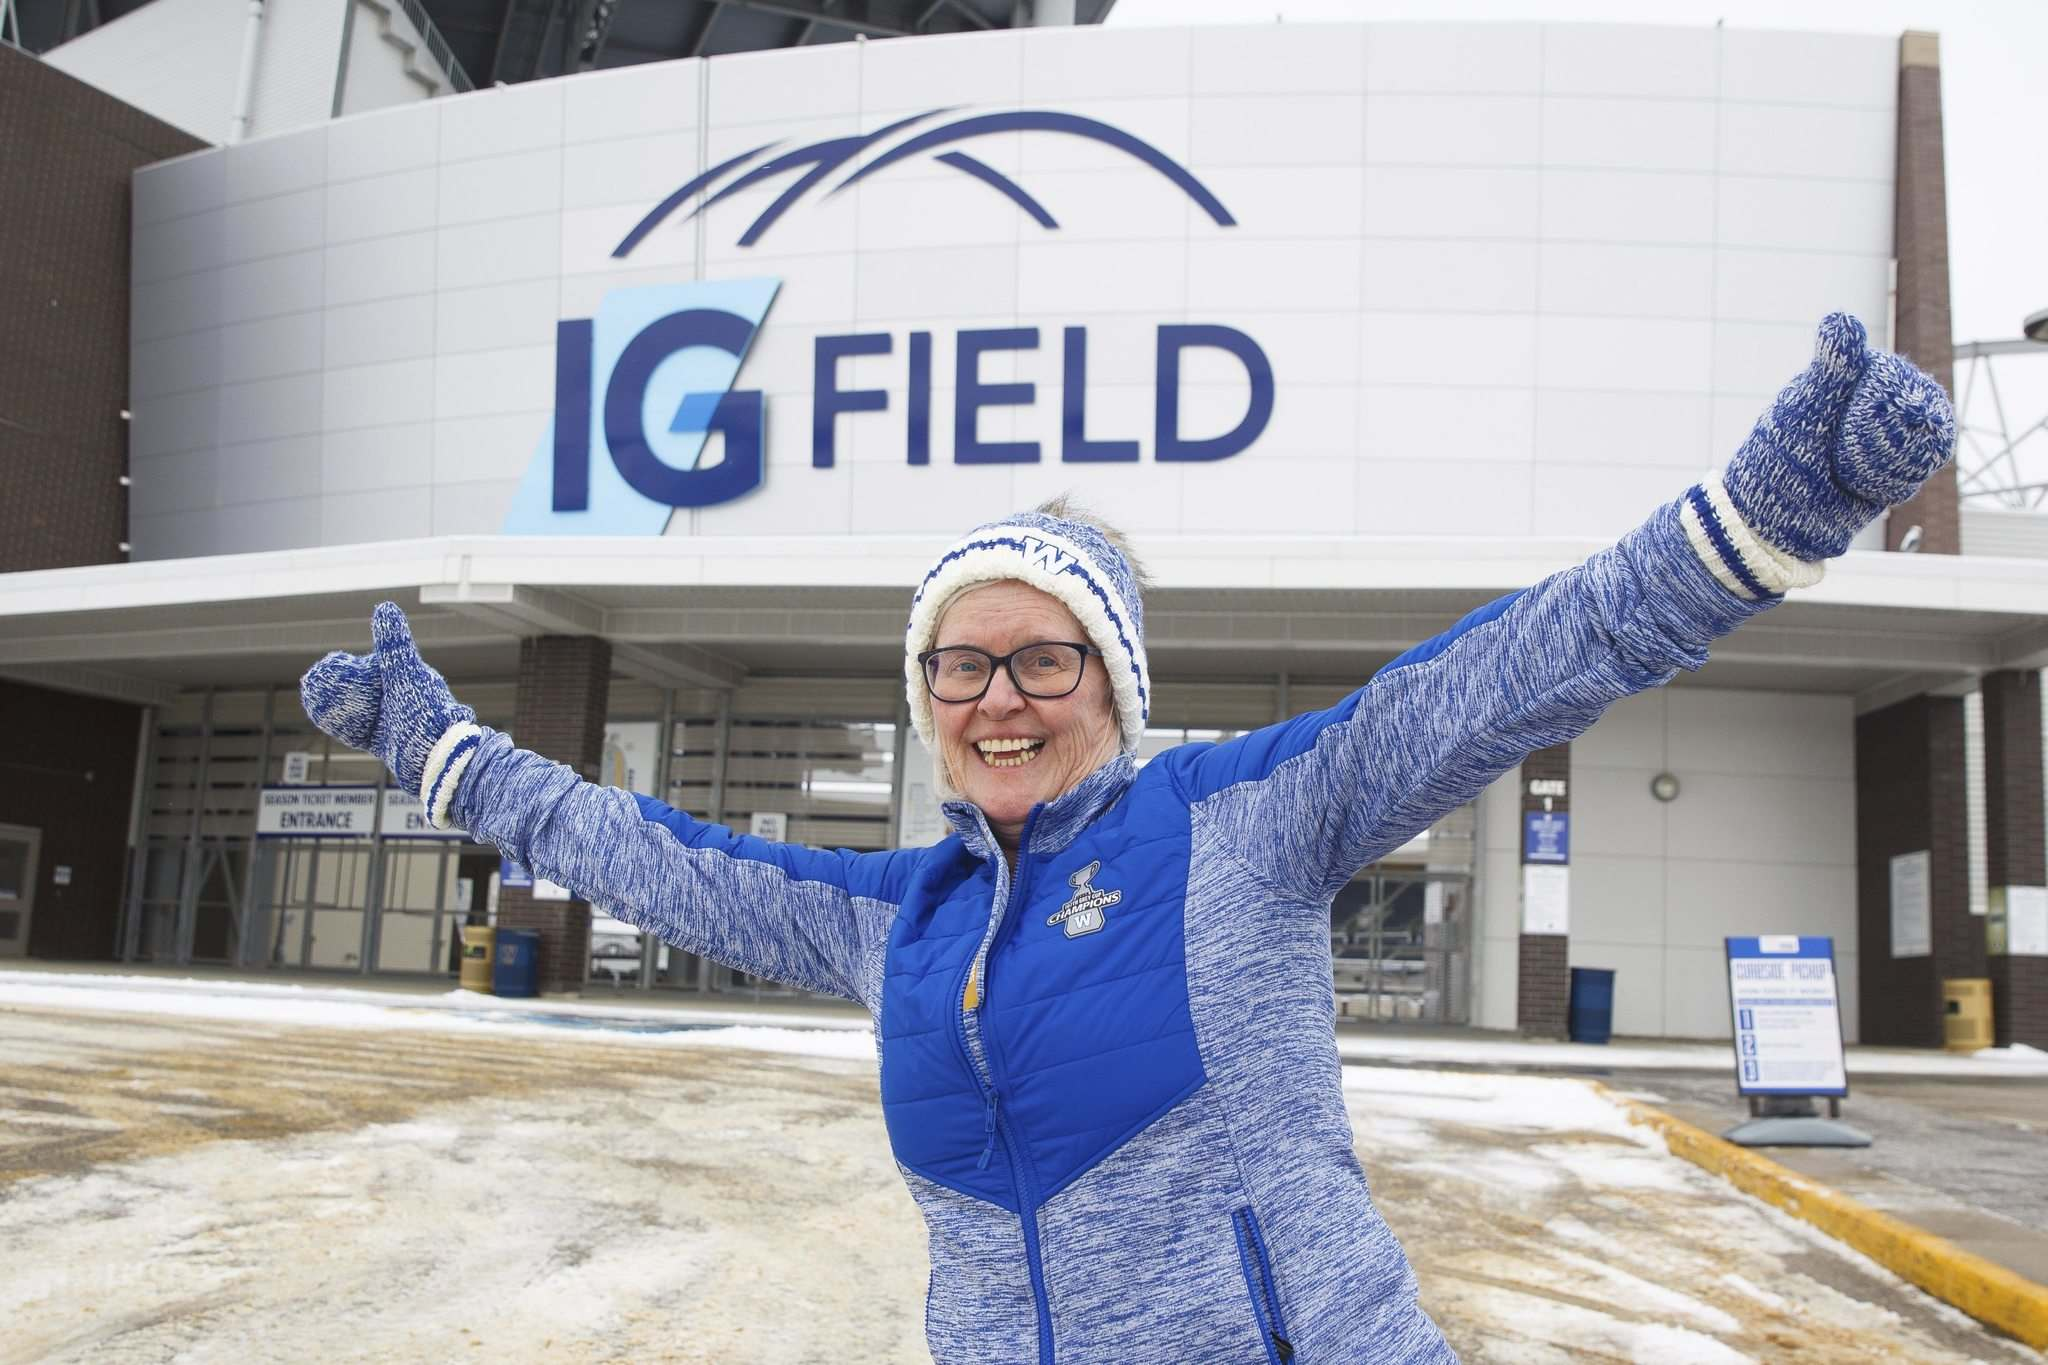 "MIKE DEAL / WINNIPEG FREE PRESS</p> <p>Carol Barrott, ticket and fan services manager for the Winnipeg Blue Bombers, outside of IG Field Friday morning celebrating the one year anniversary of the team's Grey Cup win.</p> <p>""> </a><figcaption readability="